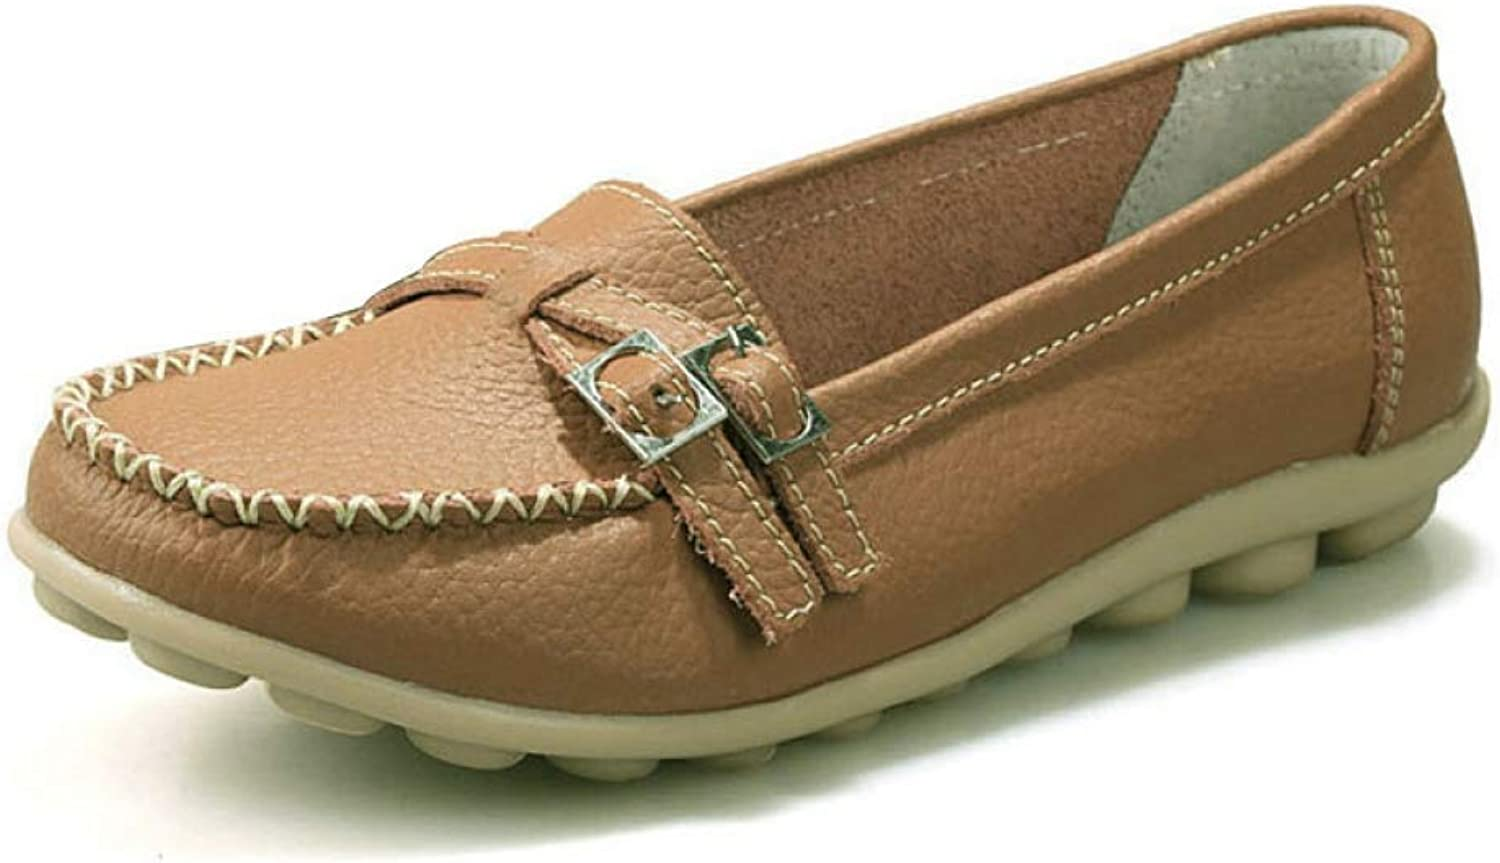 Fay Waters Women's Loafers Buckle Strap Flat shoes Casual Slip On Moccasins Sewing shoes